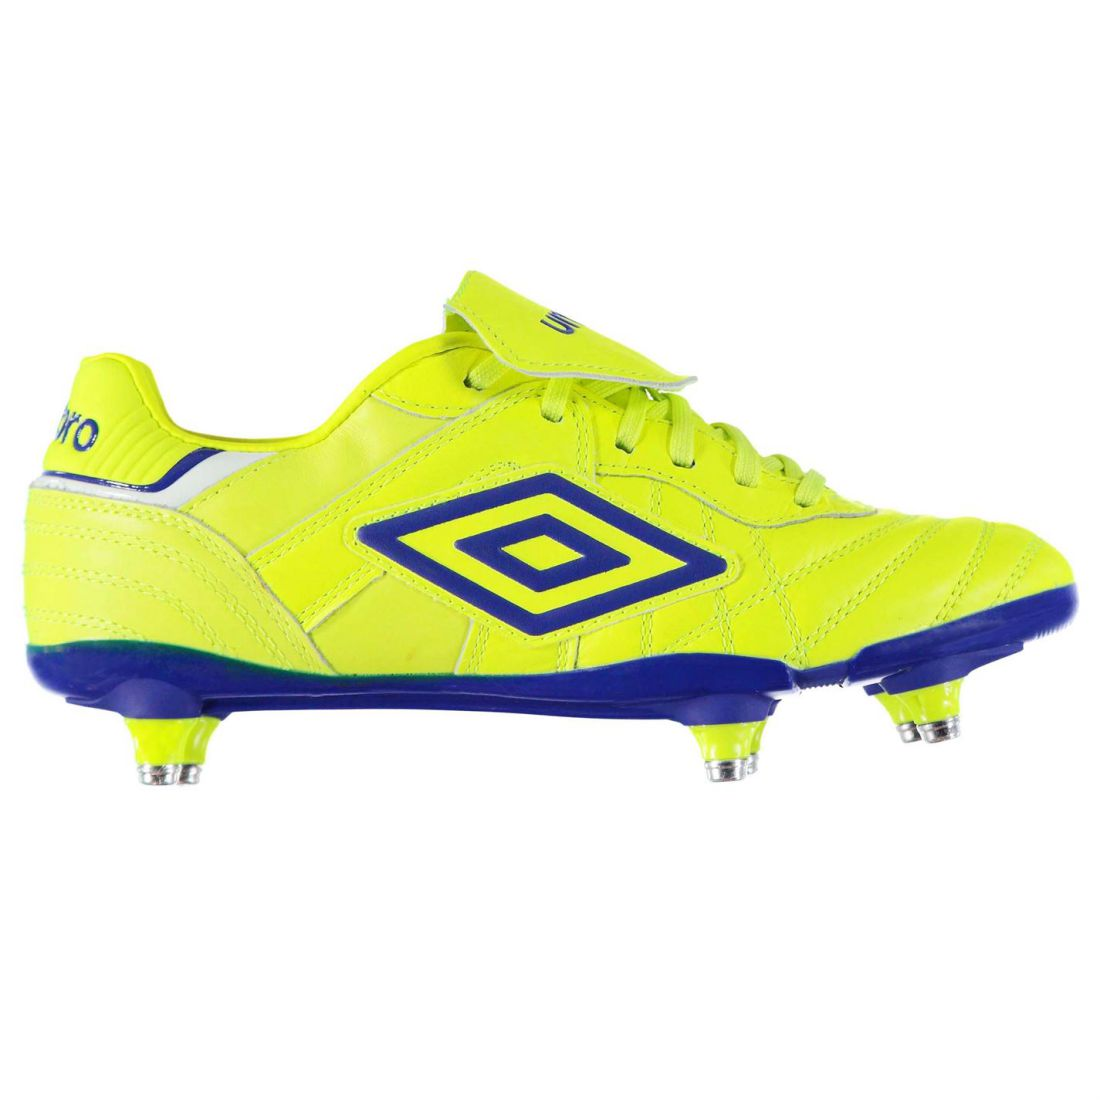 Umbro Mens Speciali Eternal Pro SG Football Boots Shoes Lace Up ... fd9e9d0919742